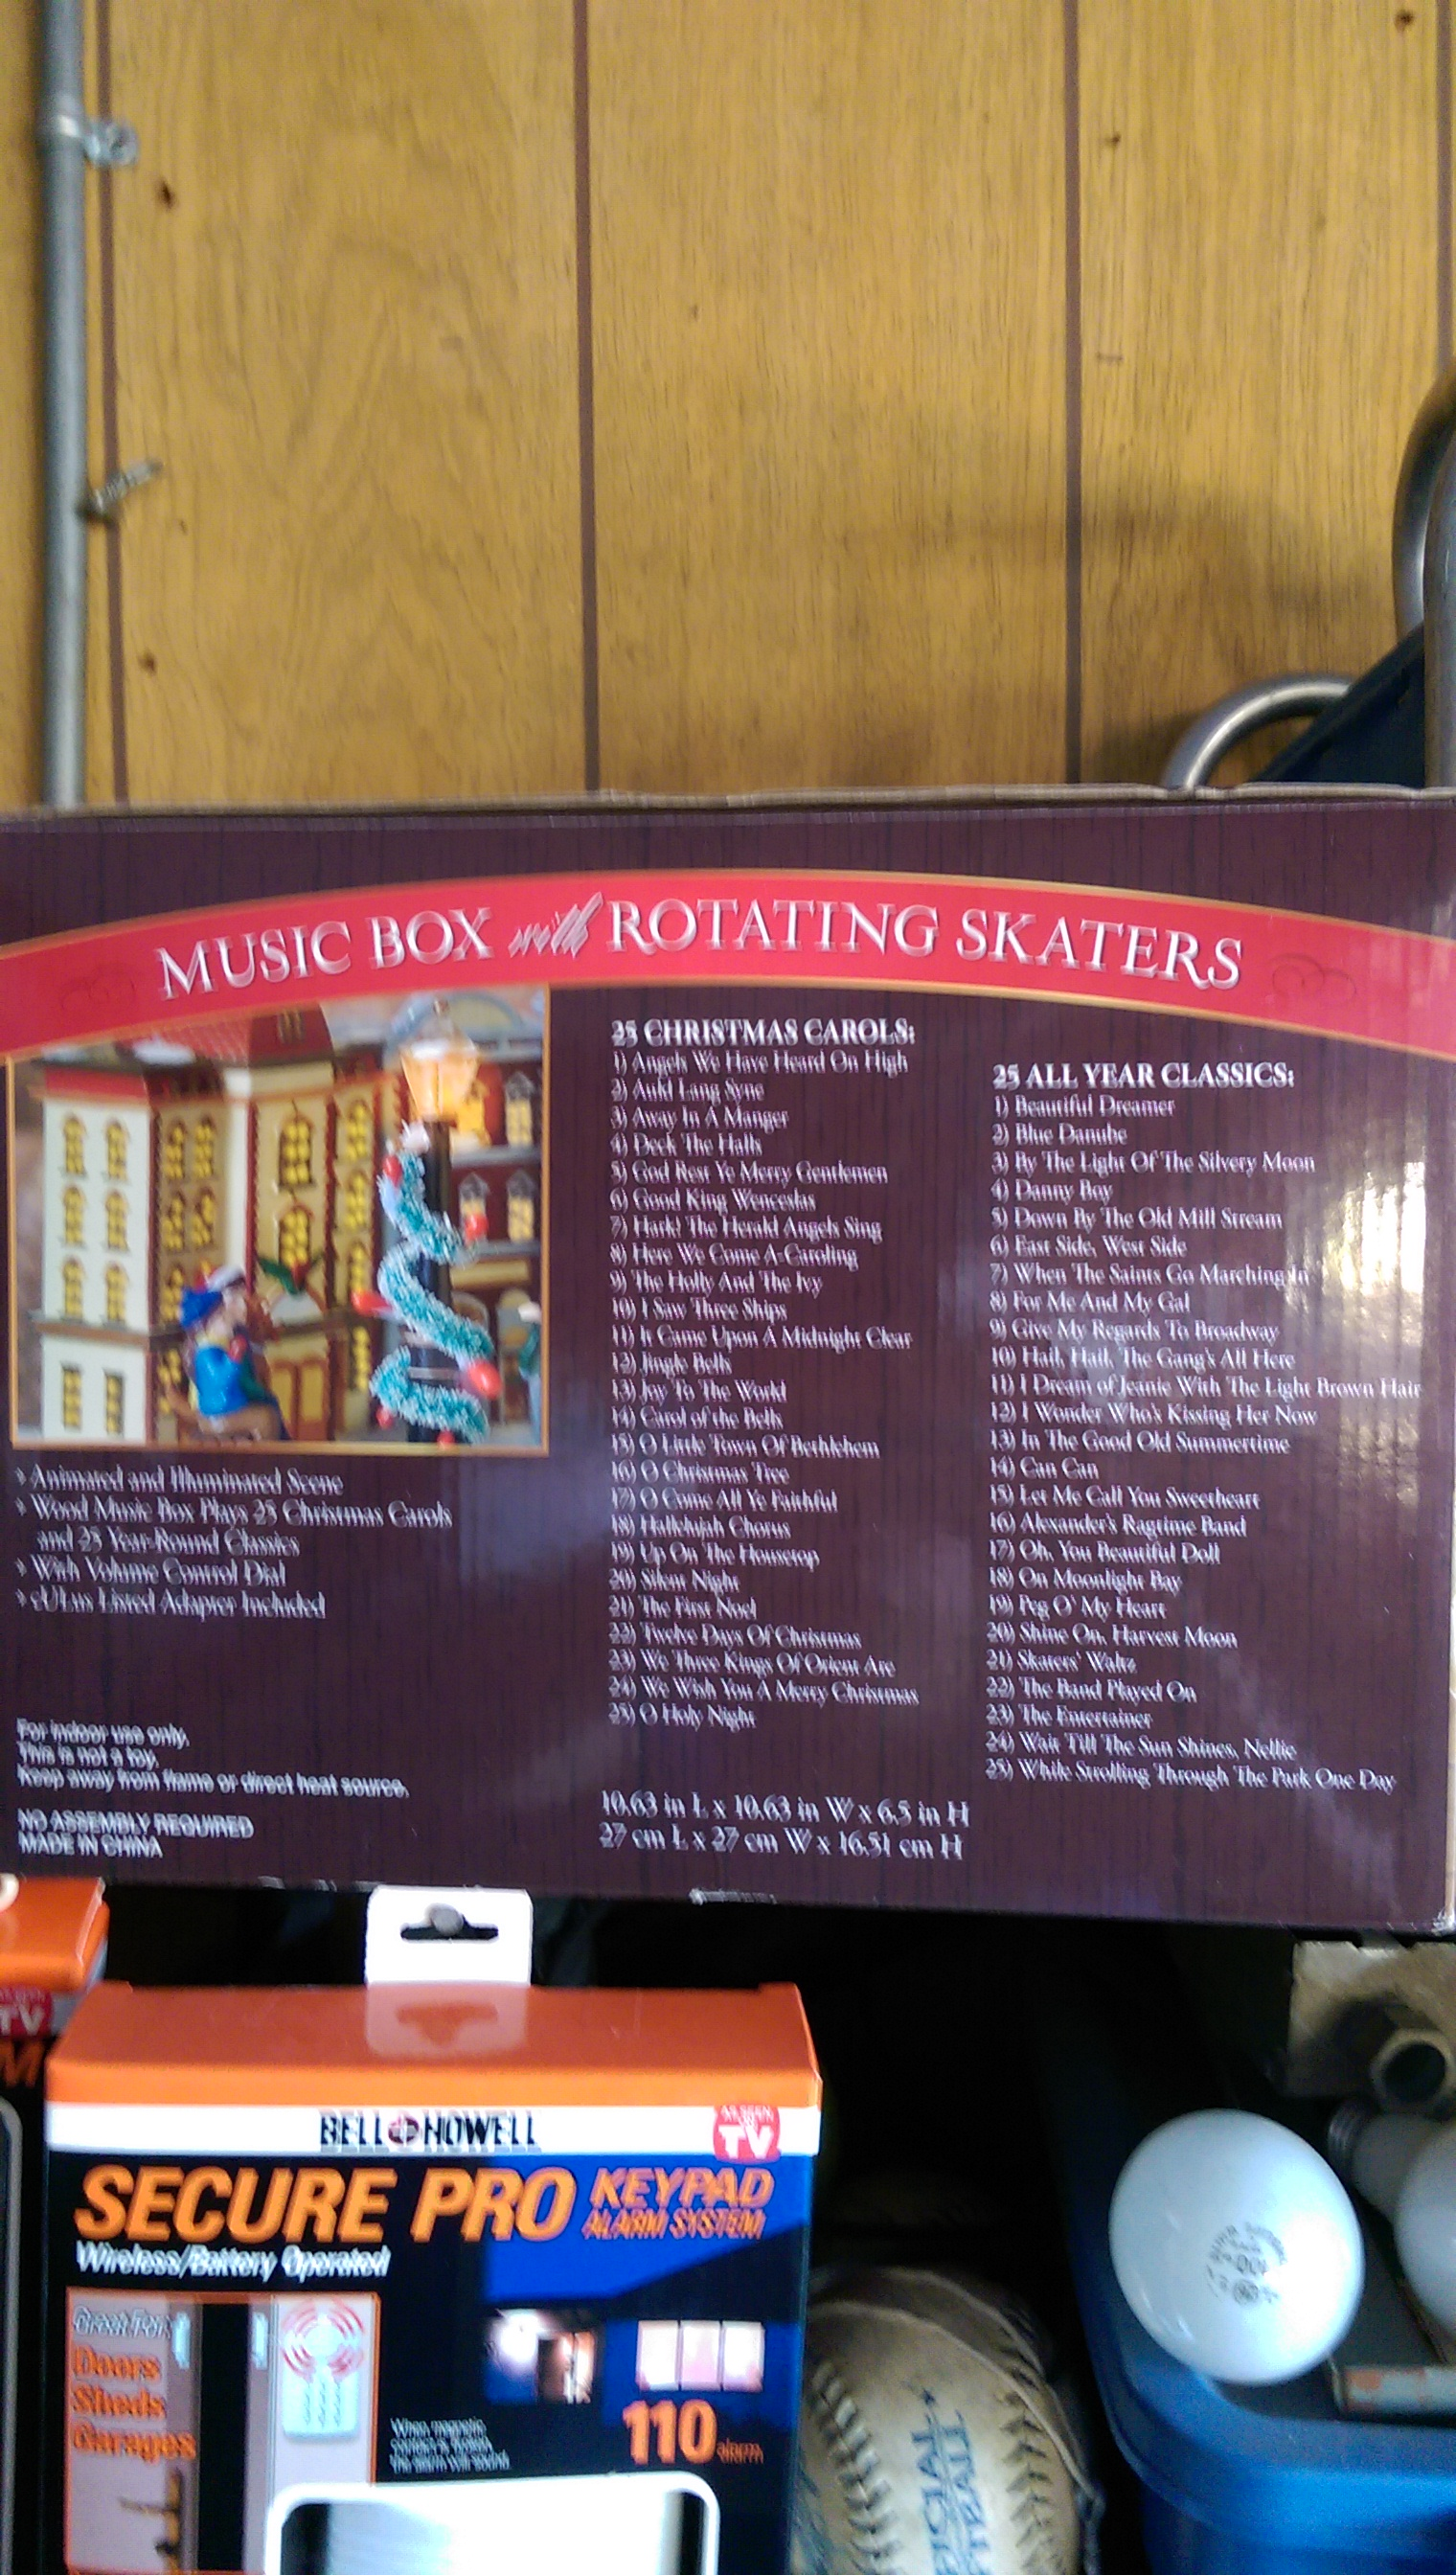 Kirkland Signature Music Box with Rotating Skaters Snowglobe - USA back image (back cover, second image)